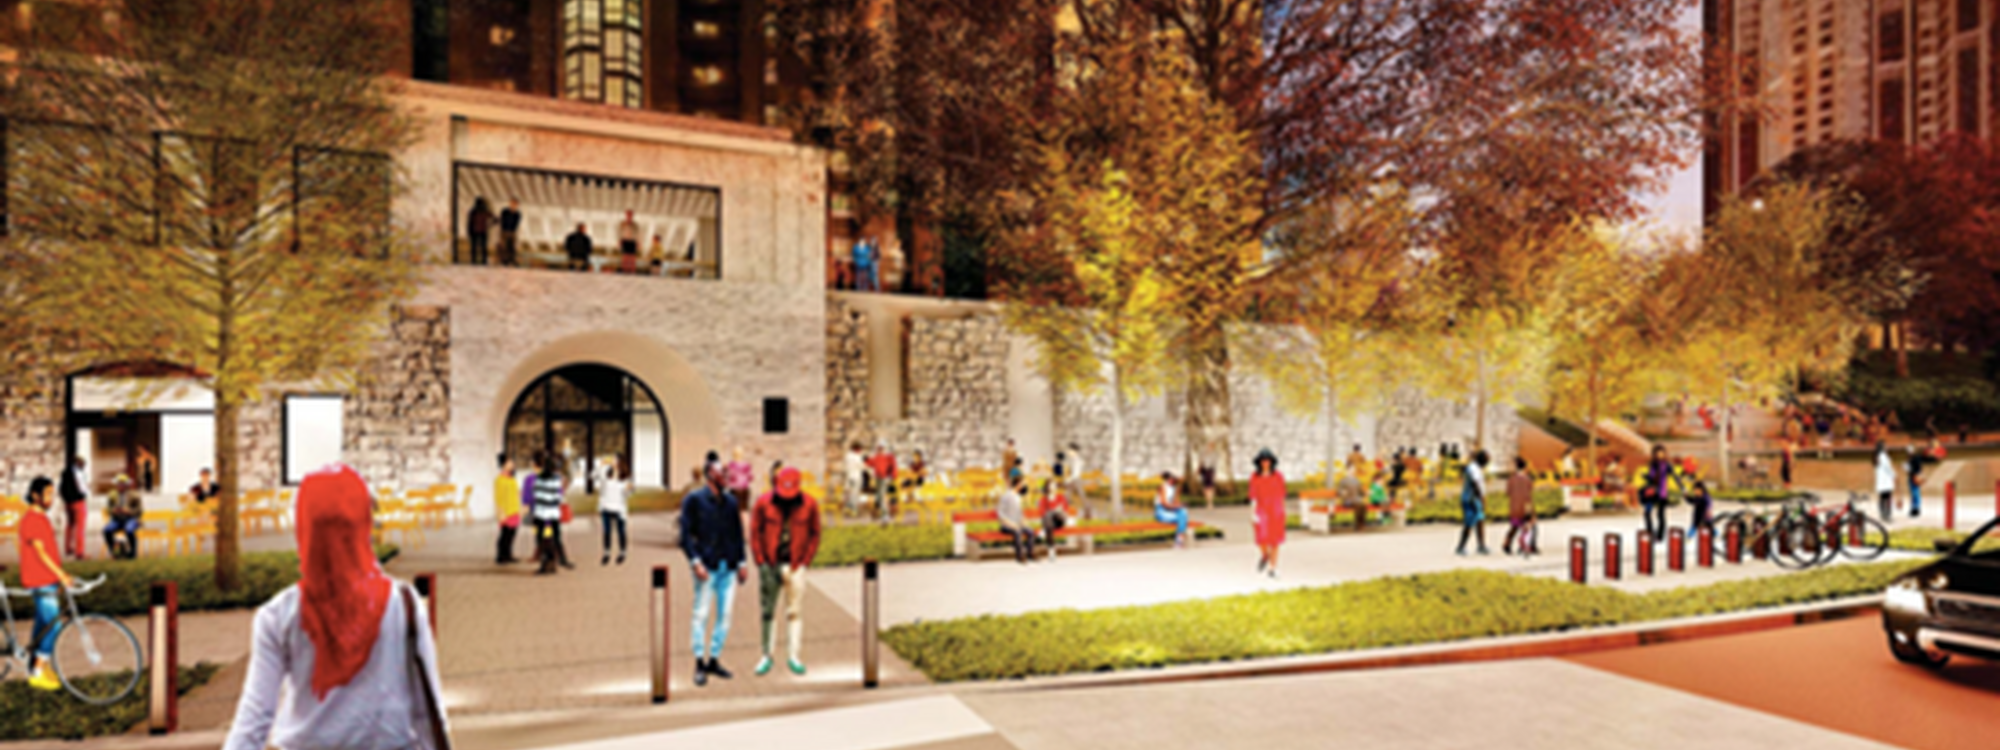 Minneapolis Parks Foundation rendering of a new park